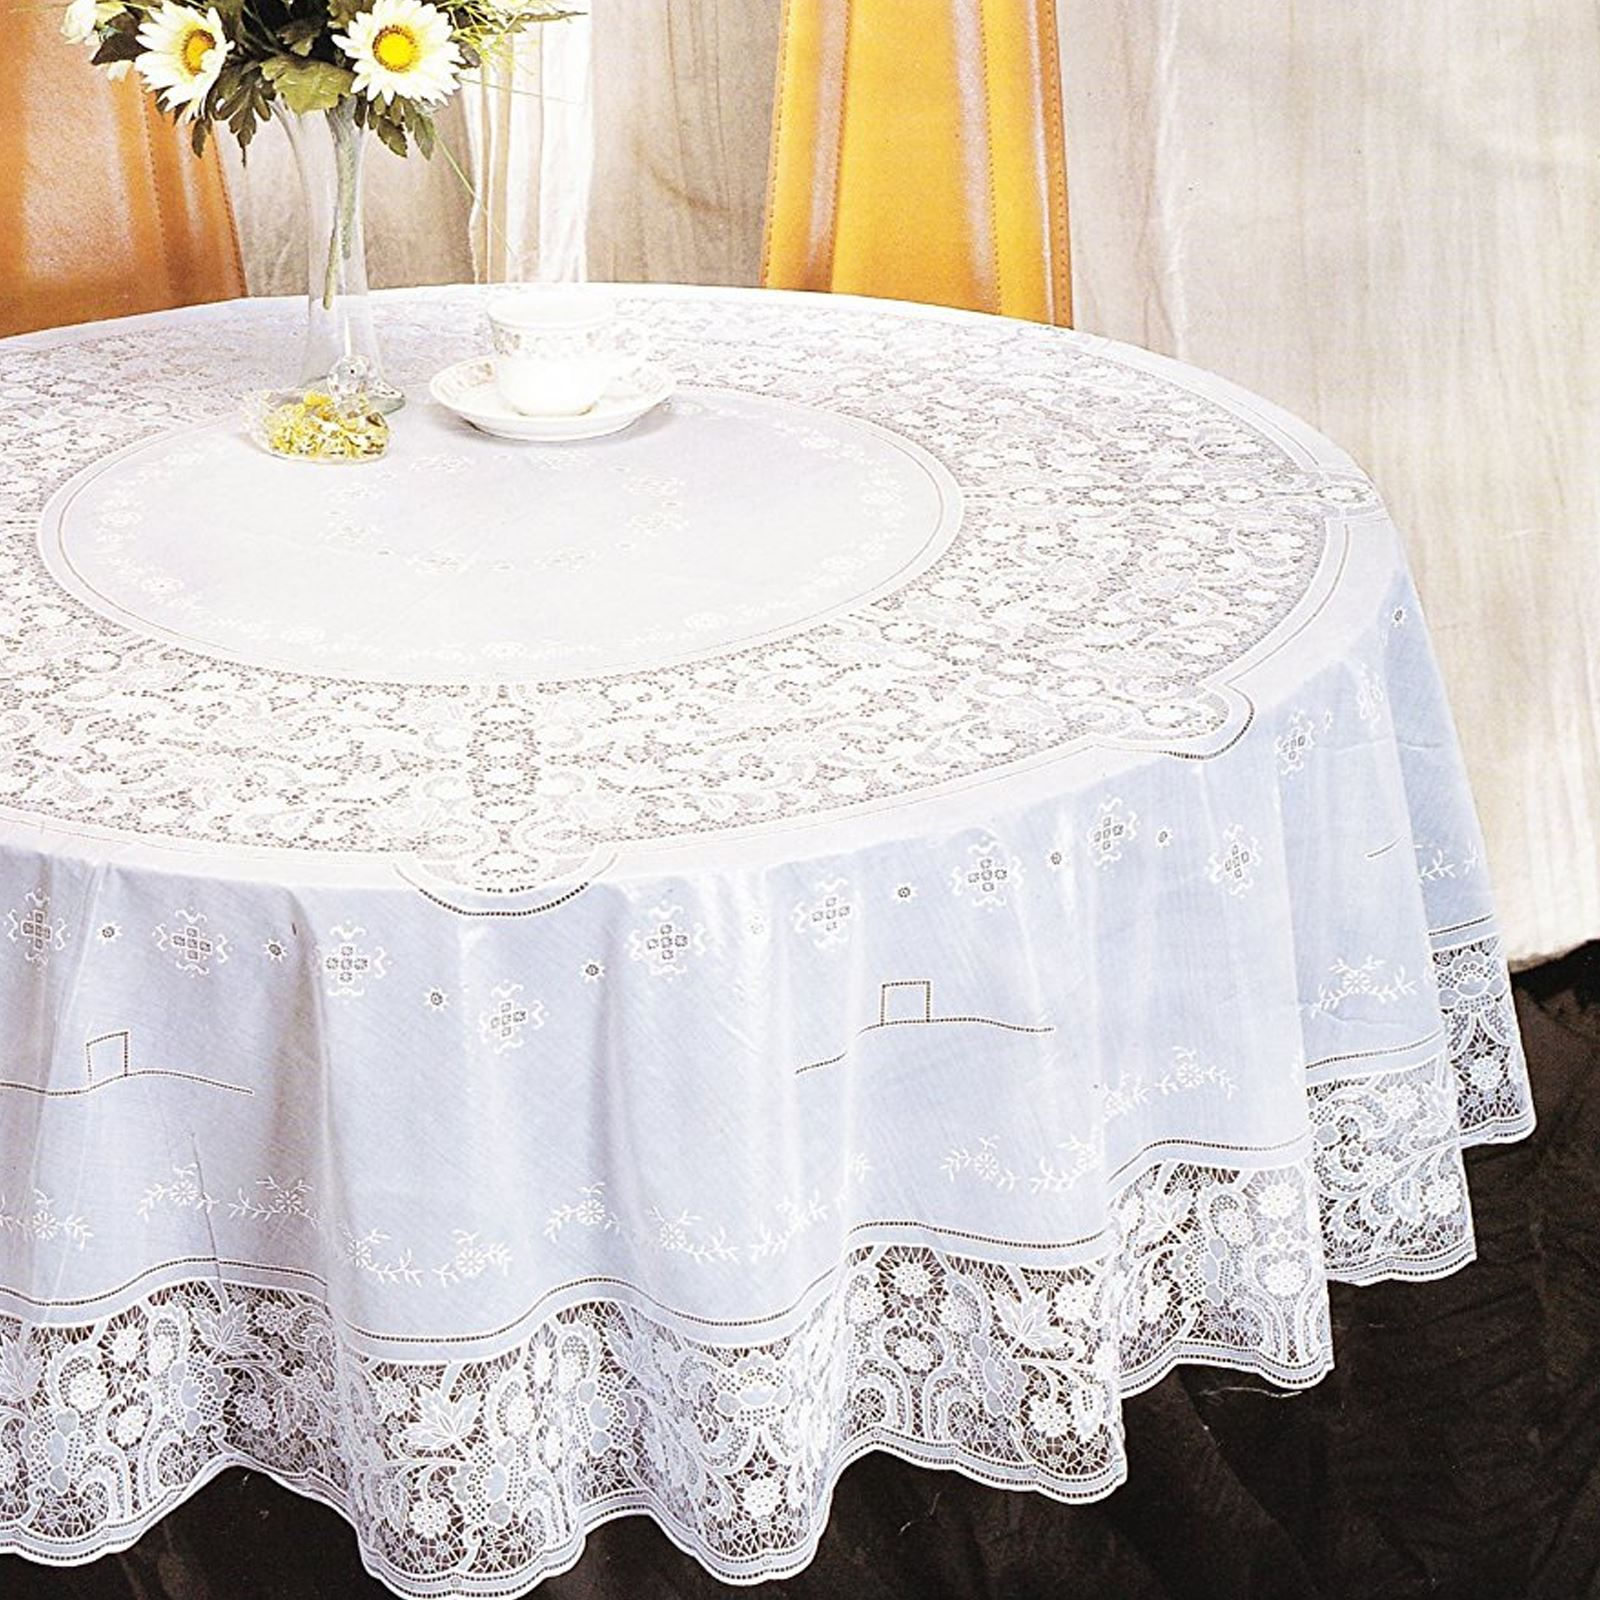 Lace Tablecloths Oval 300x300.jpg Vinyl-Lace-Tablecloth-Table-Cover-White-Square-Round-